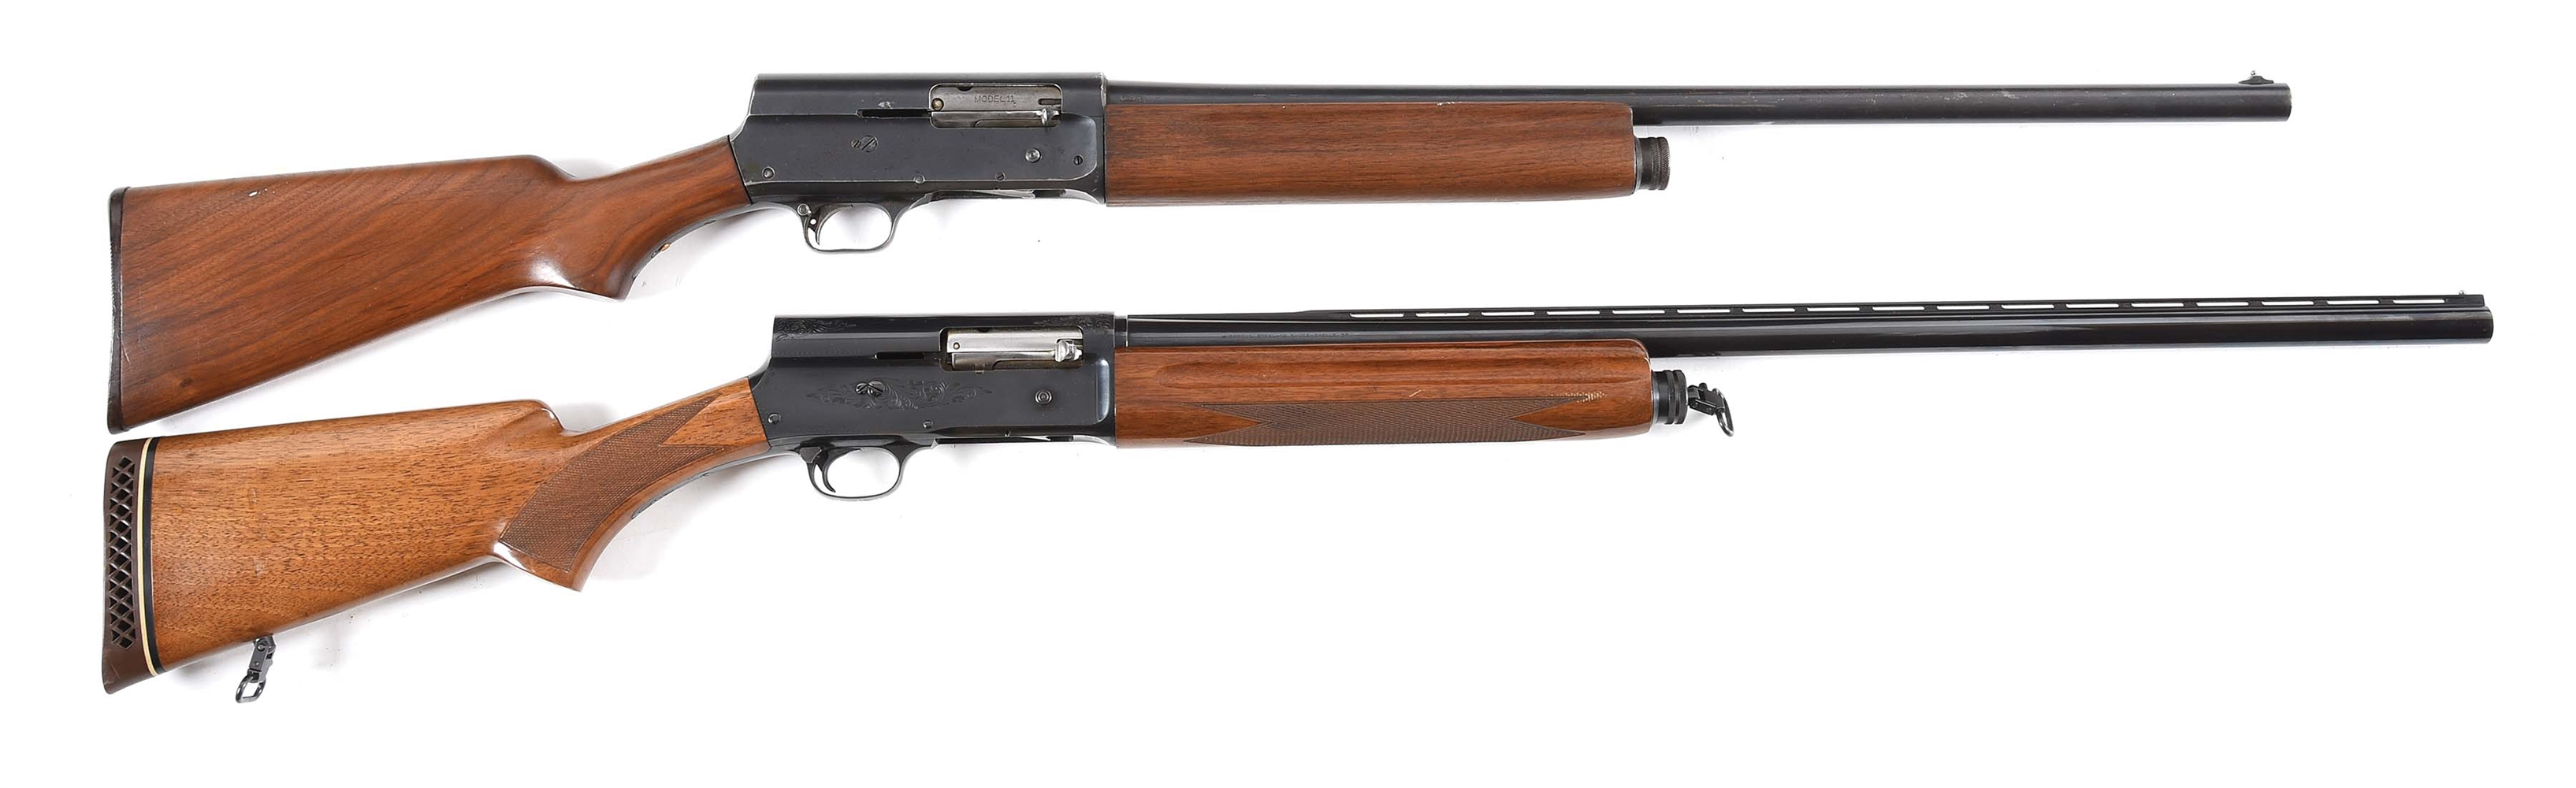 (C) LOT OF 2: SCARCE REMINGTON 11 WITH U.S. MILITARY MARKINGS AND BROWNING A5 SEMI AUTOMATIC SHOTGUNS.